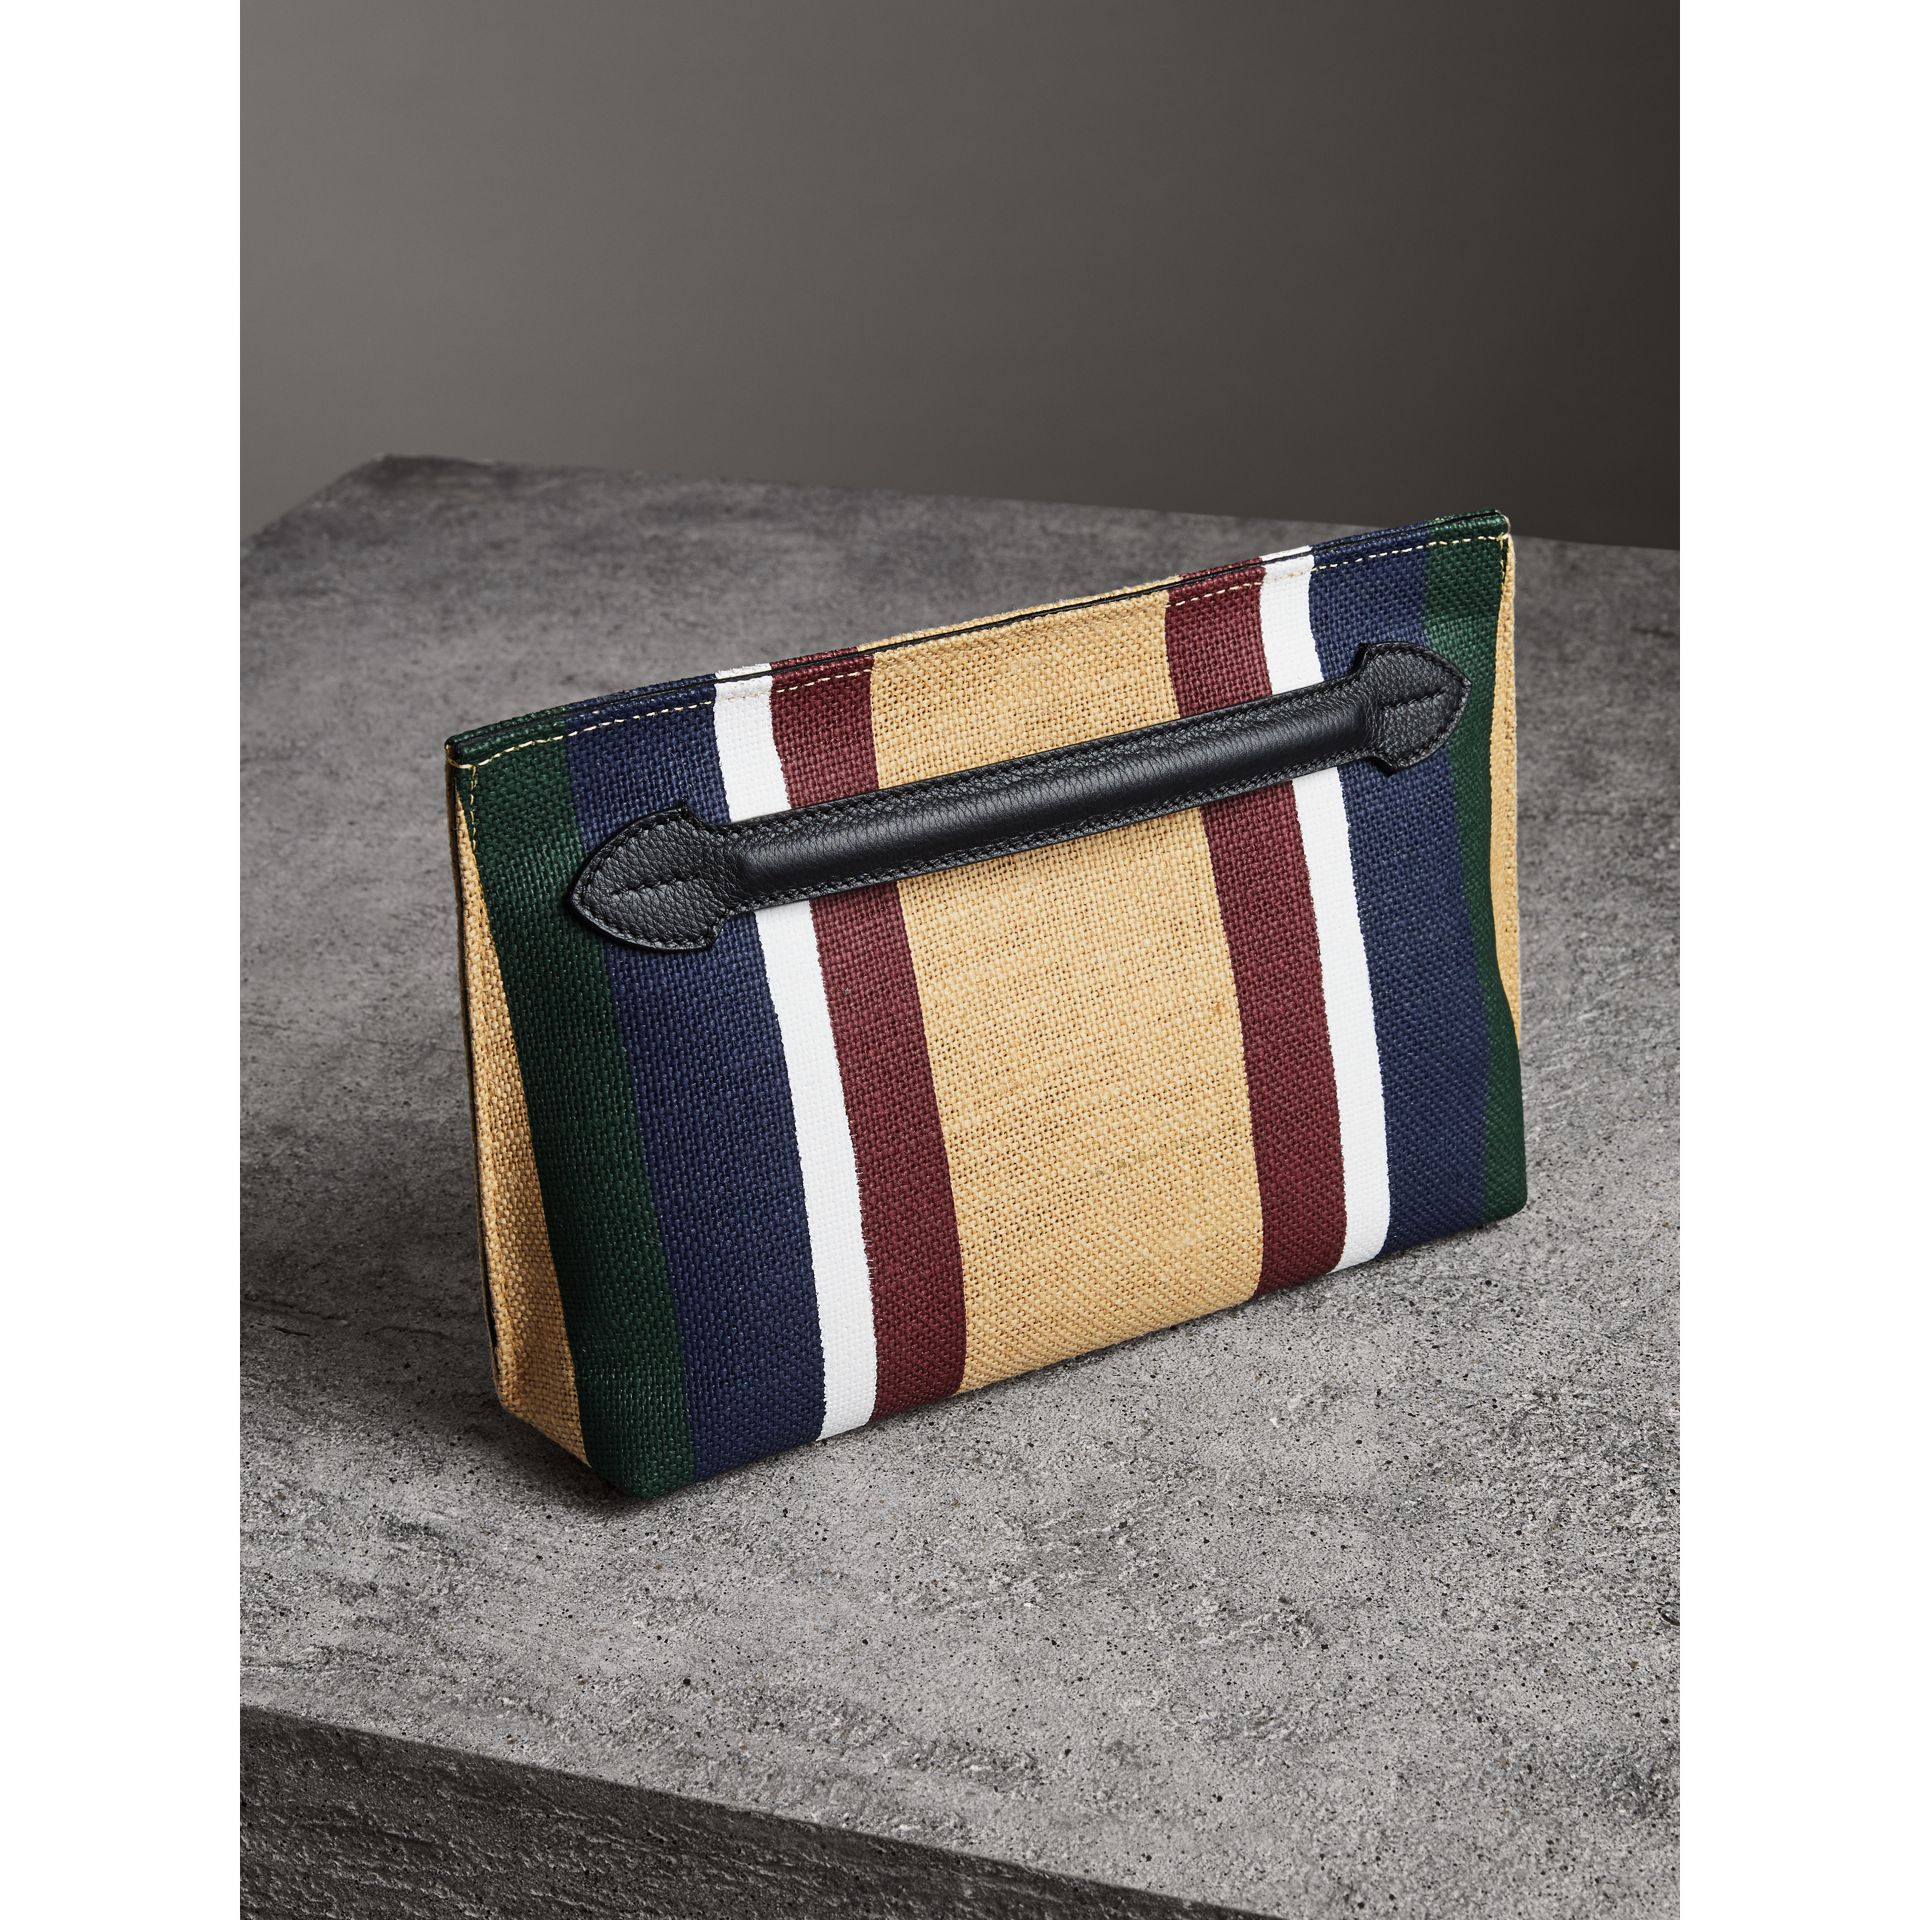 Striped Jute Wristlet Clutch in Black - Women | Burberry Singapore - gallery image 4